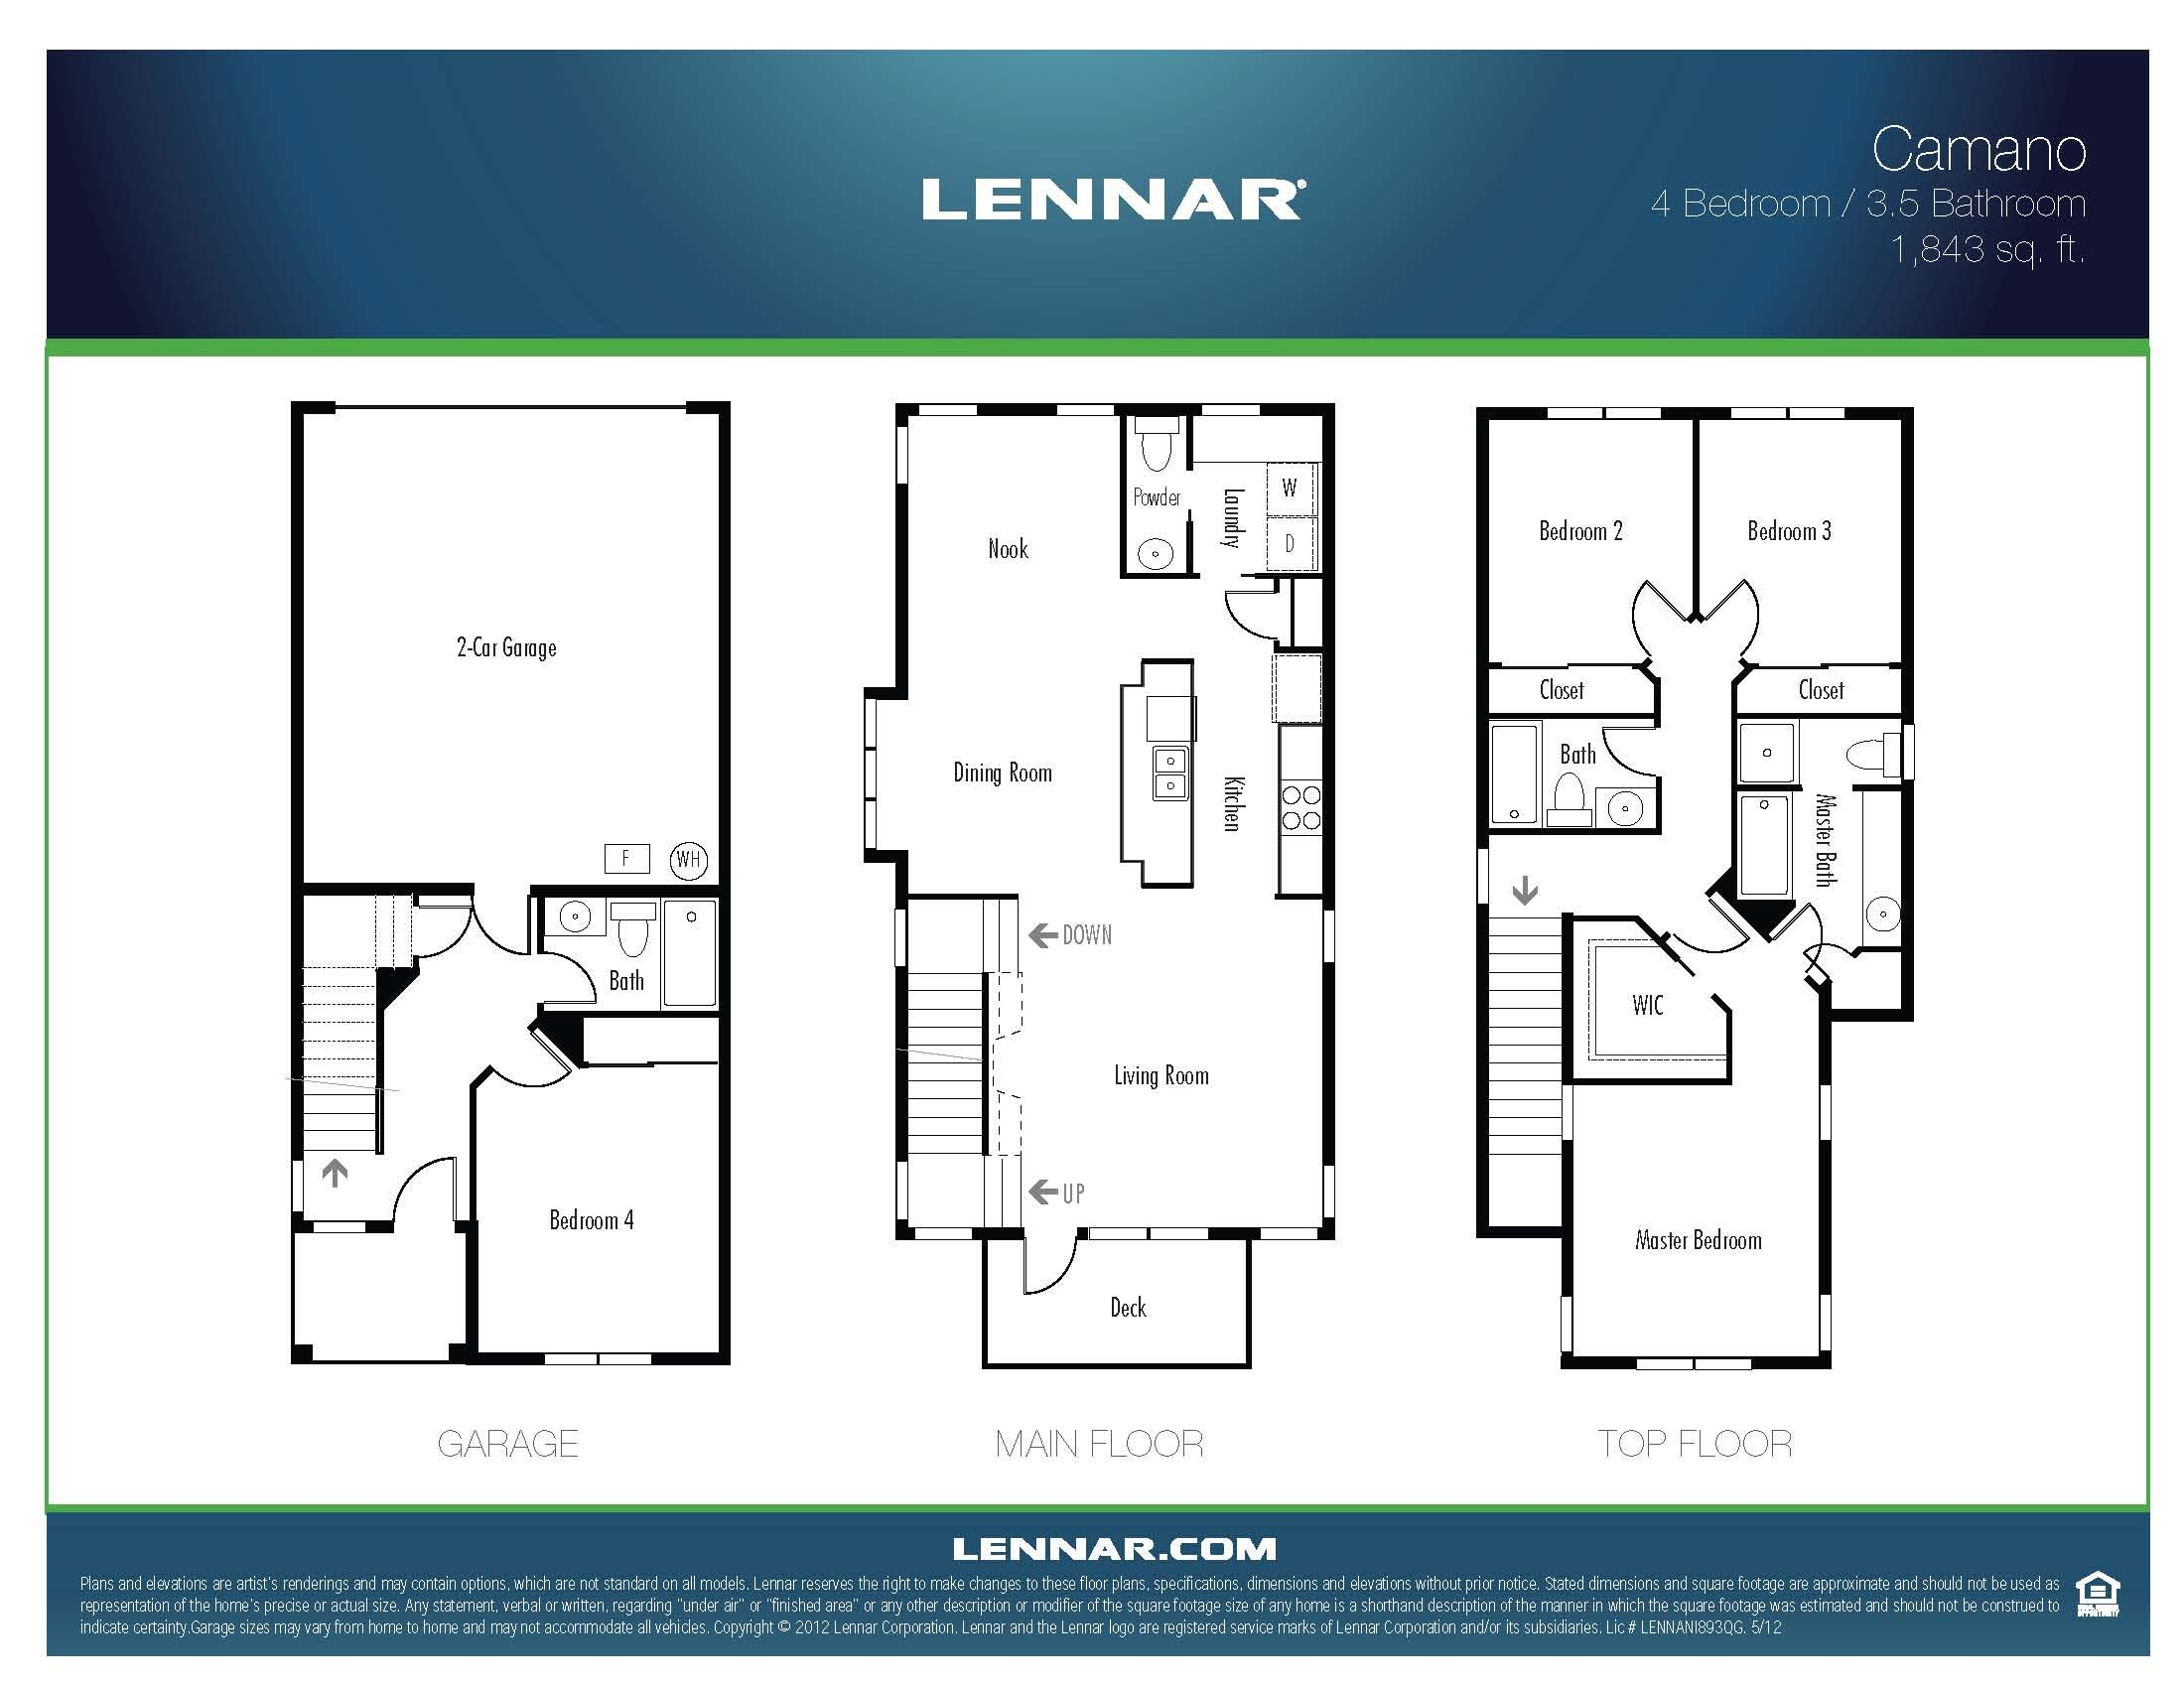 The camano lennar seattle floorplans pinterest for New homes seattle washington area